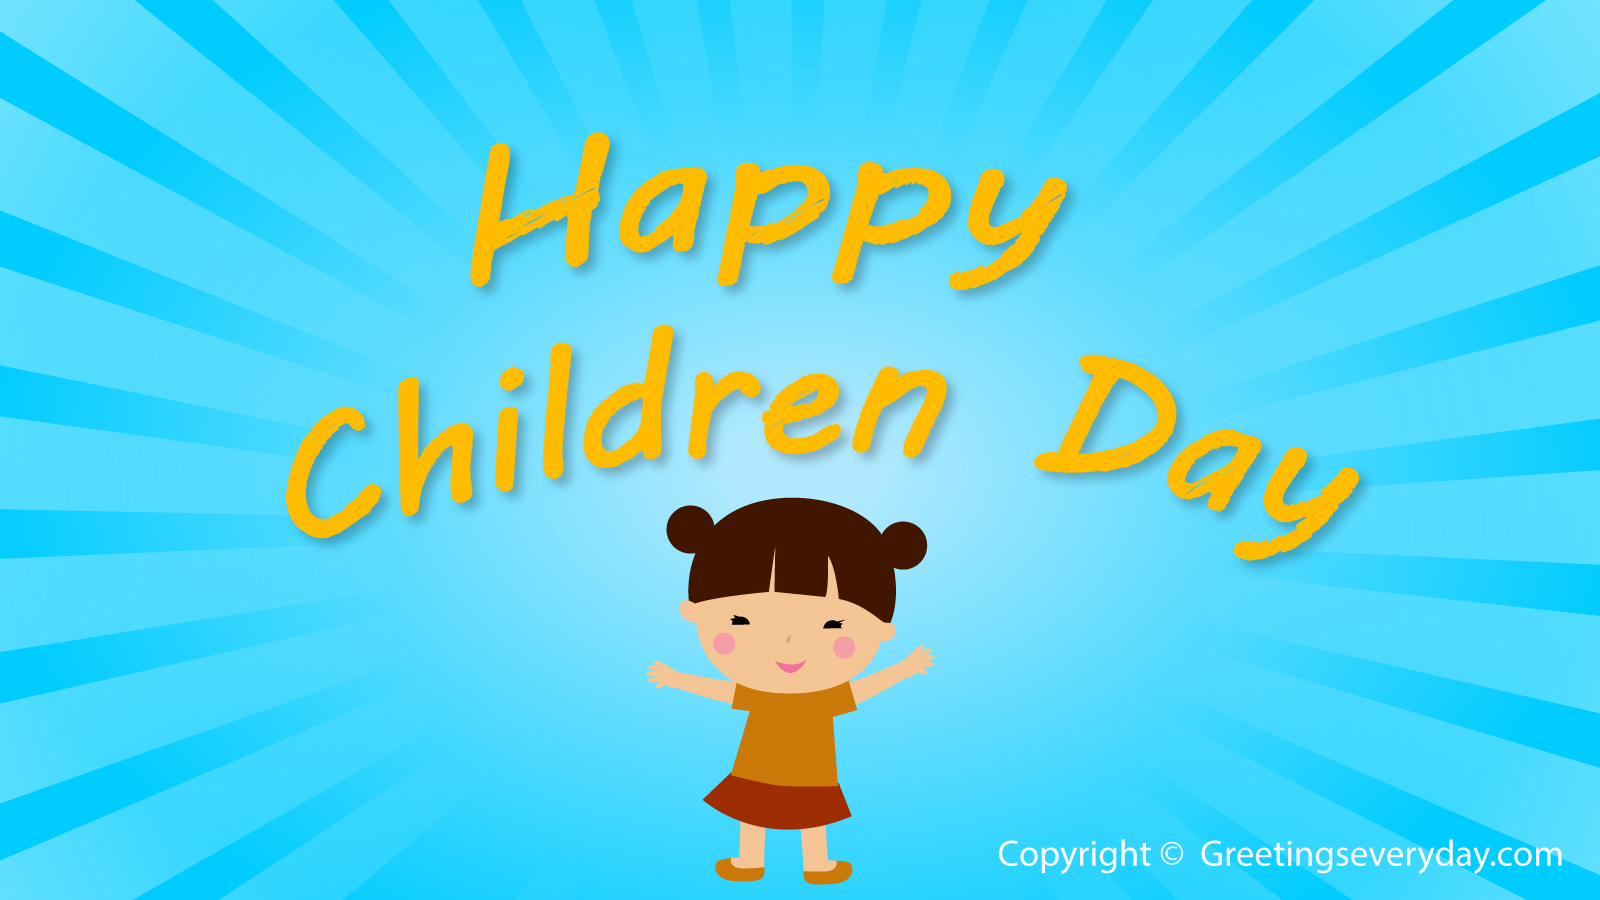 Happy Children's Day 2017 Wallpapers